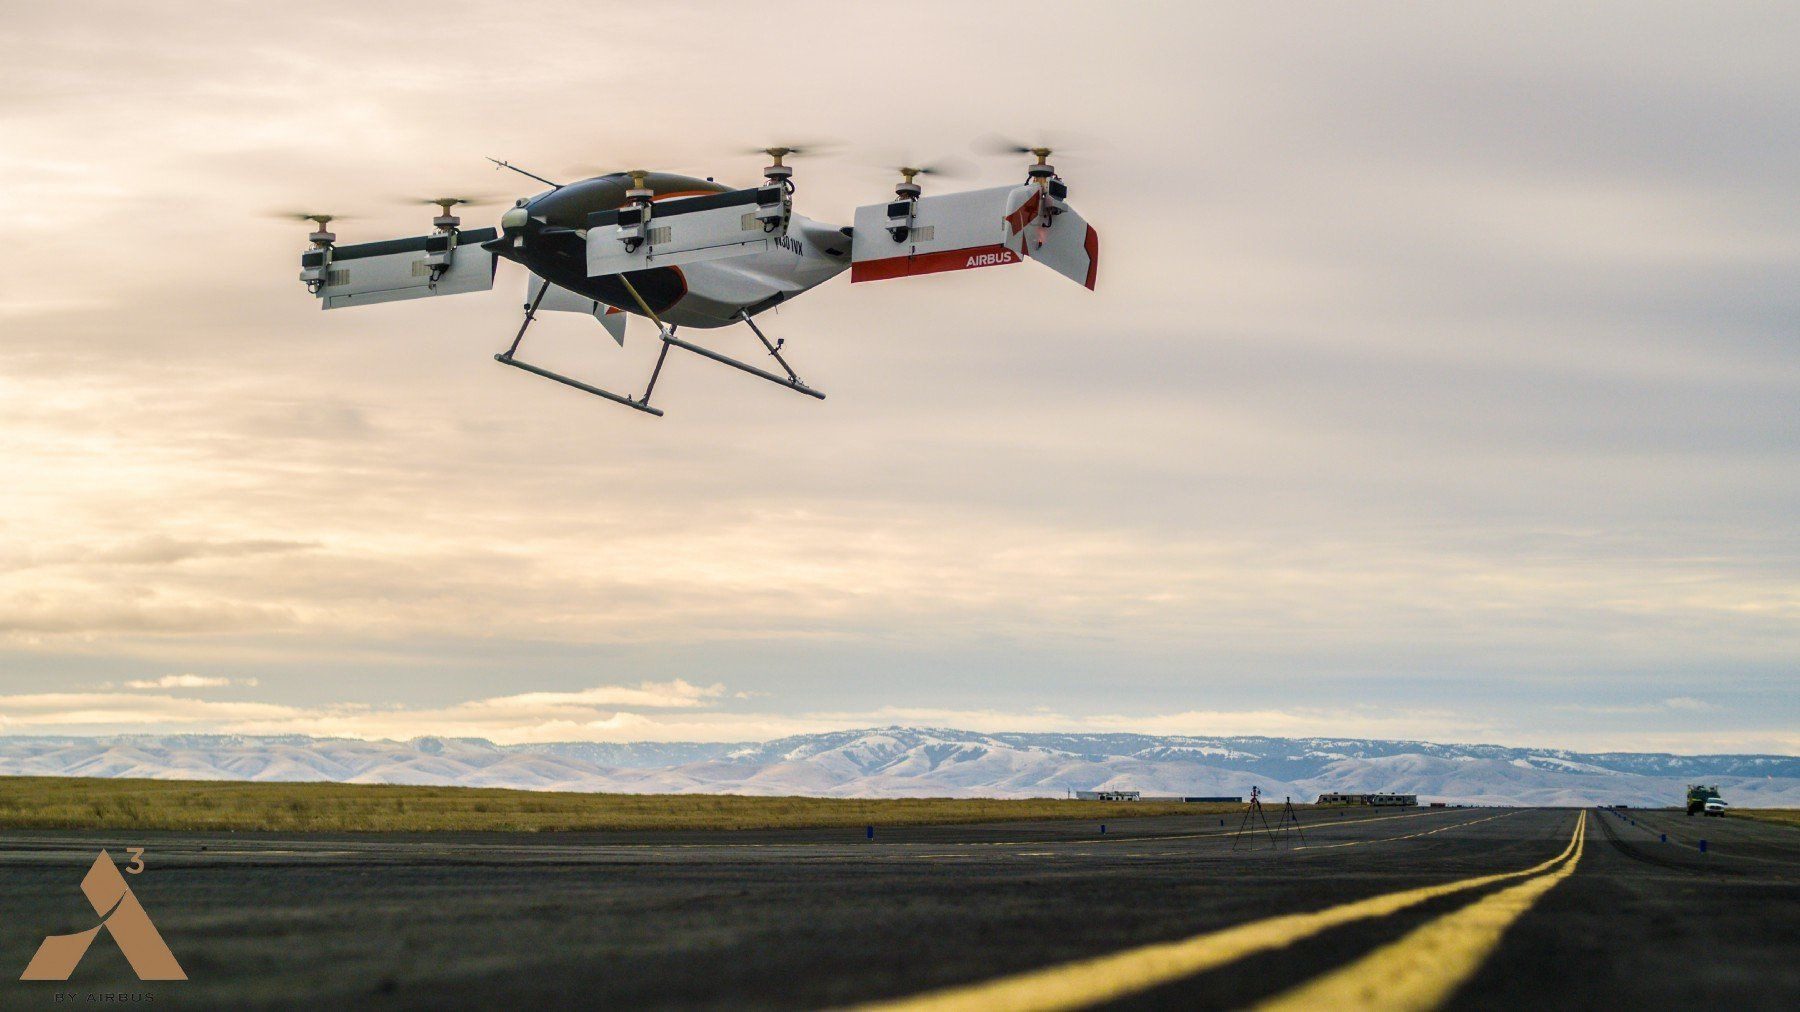 Airbus self-piloted aircraft takes first flight